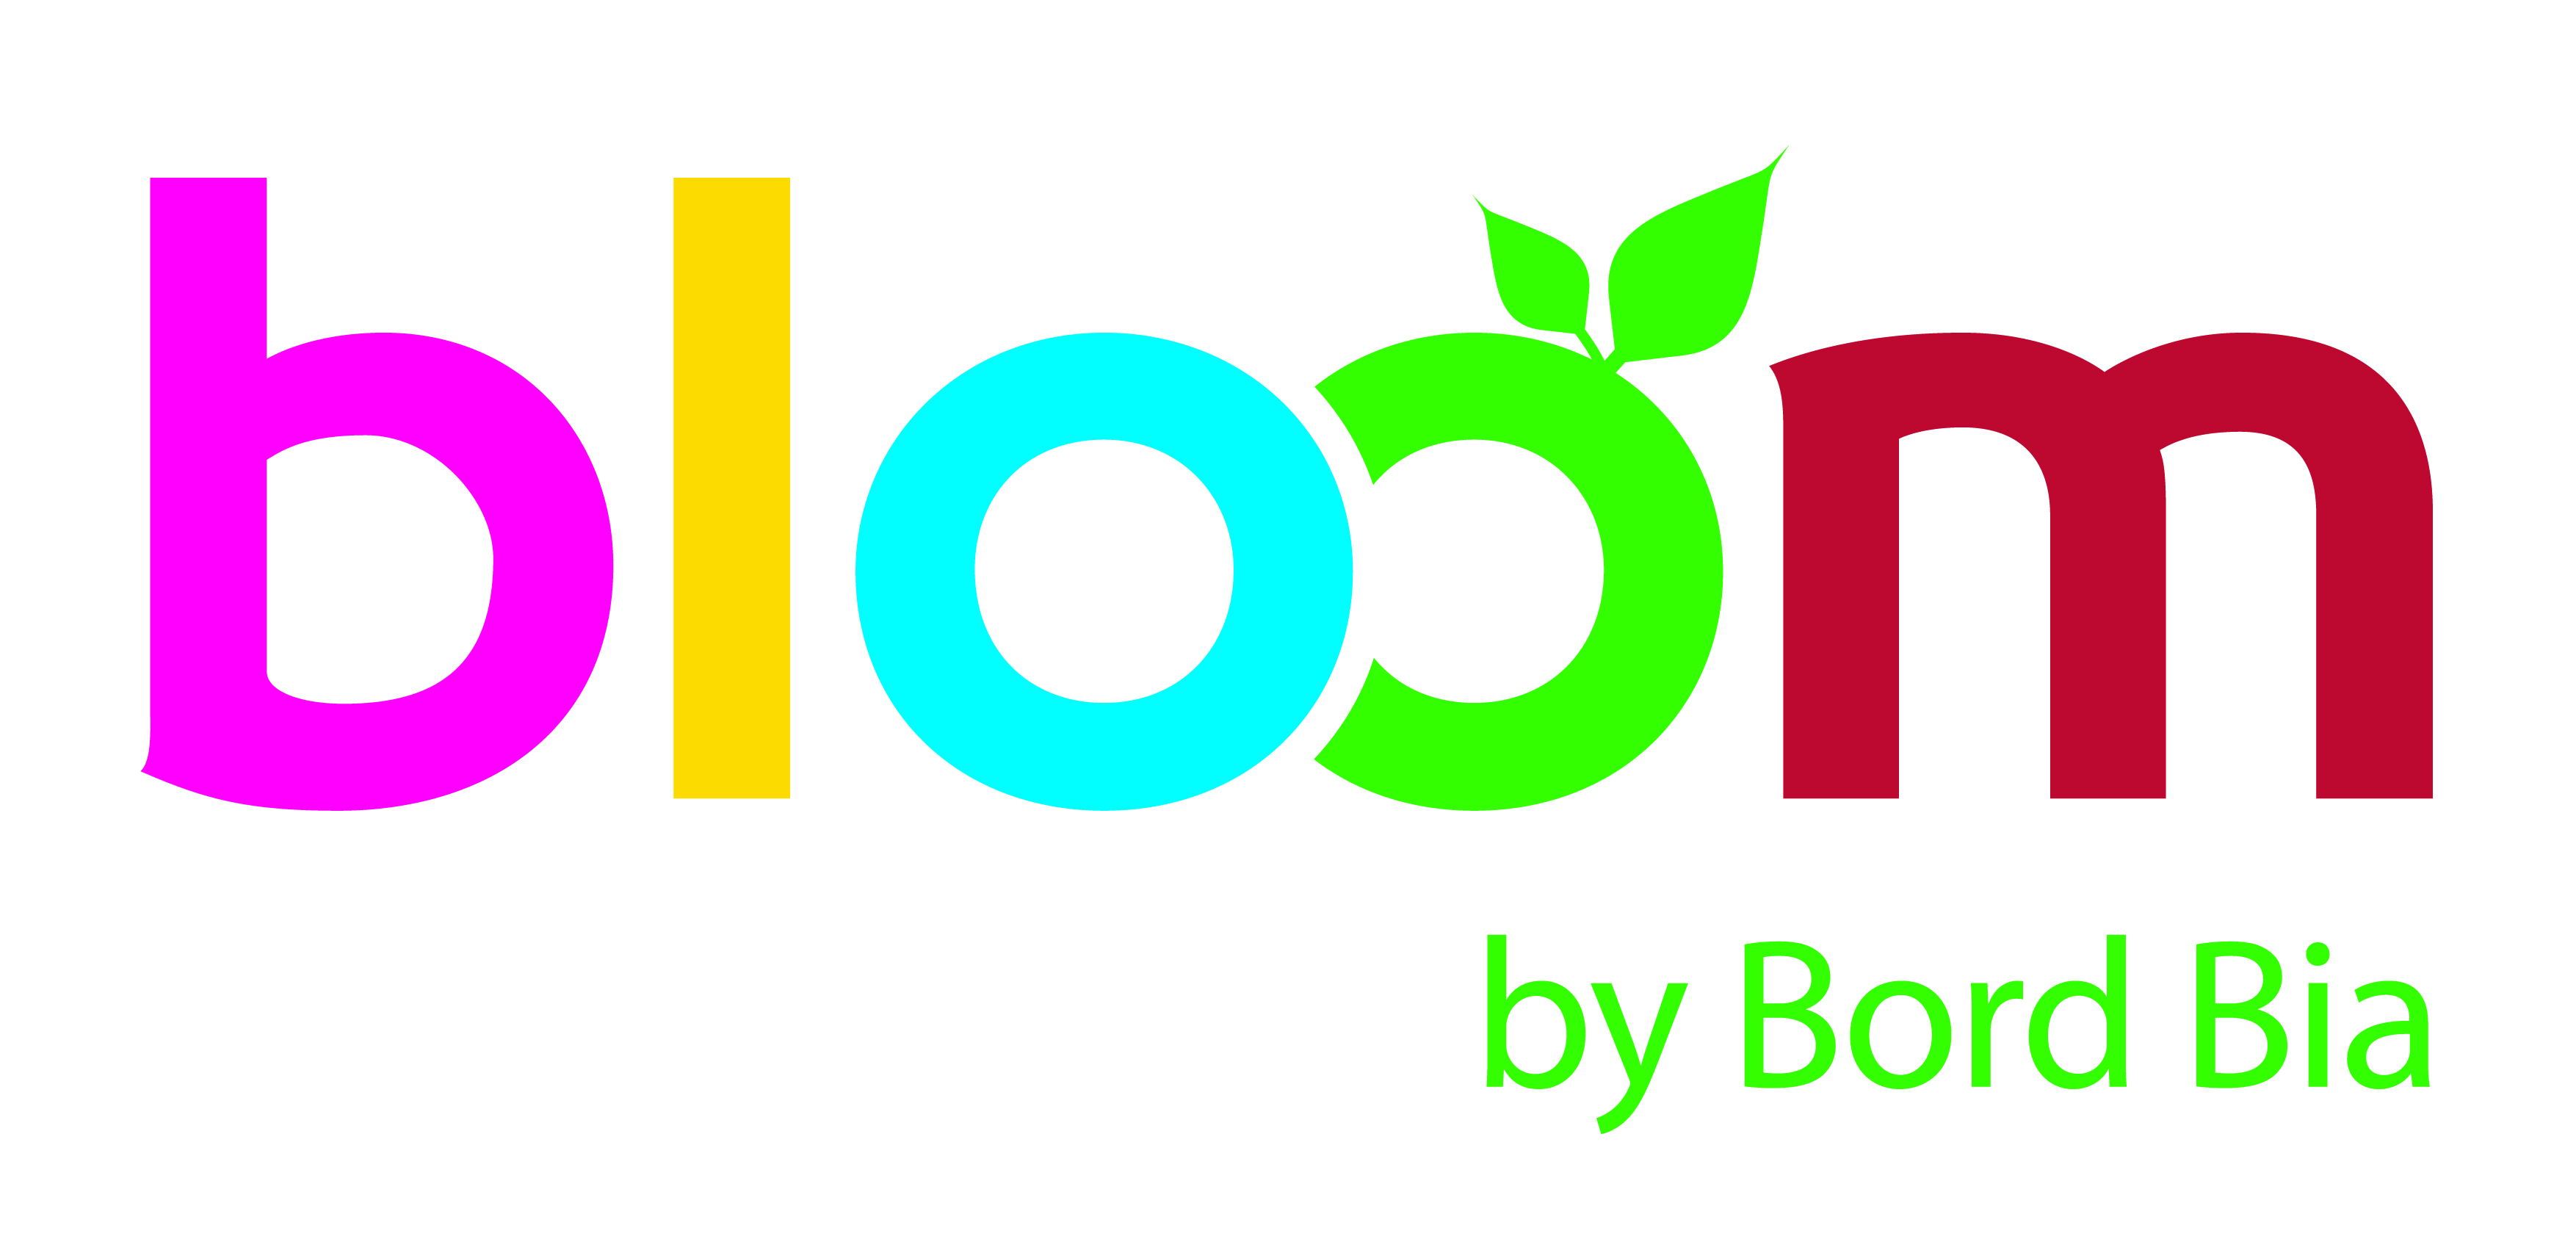 BLOOM NEW LOGO